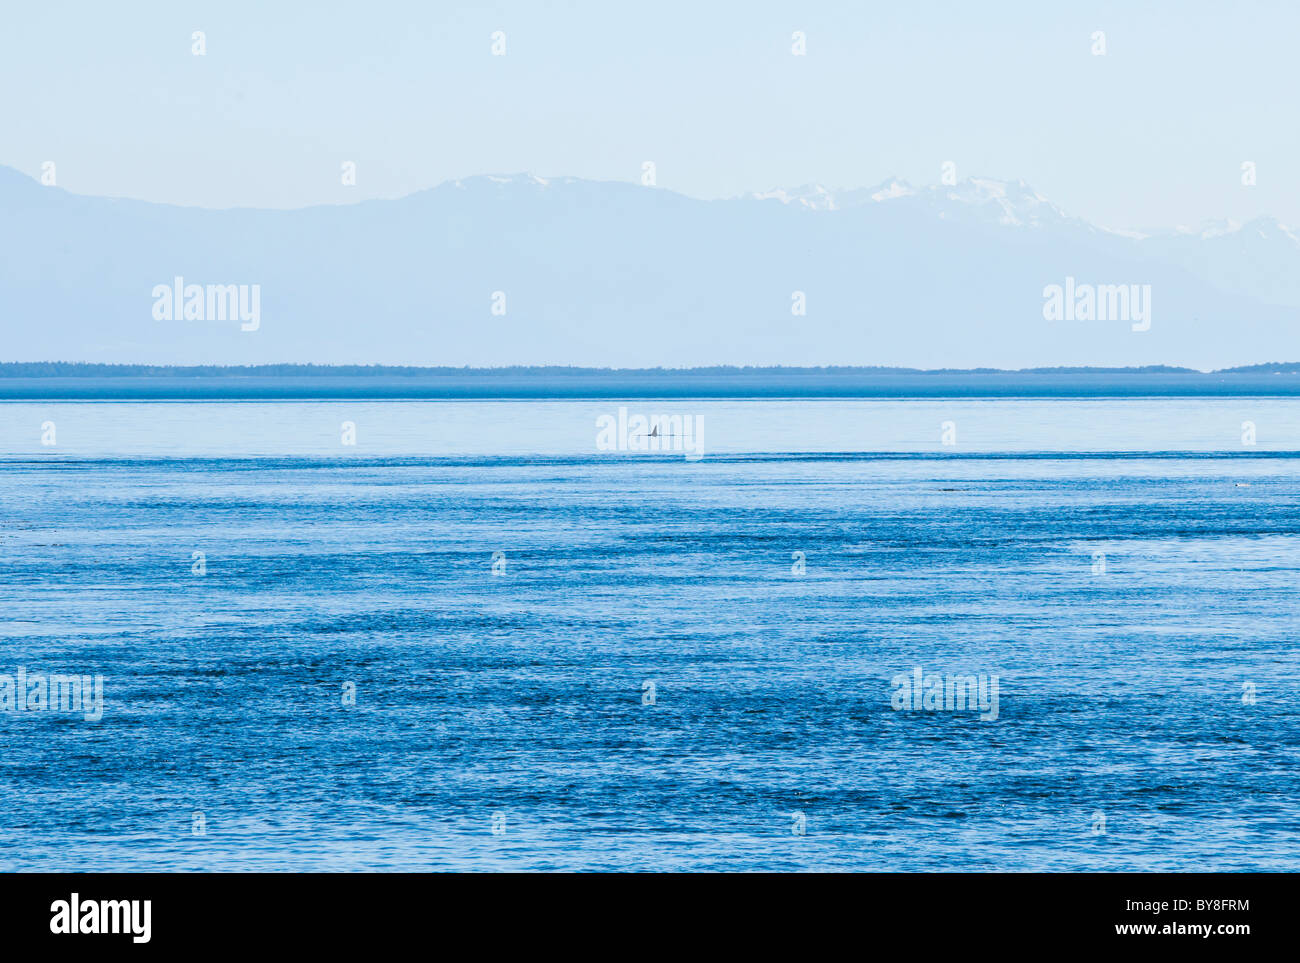 A Orca whales dorsal fin breaks the waters of Haro strait in the distance with the Olympic mountains beyond, San - Stock Image